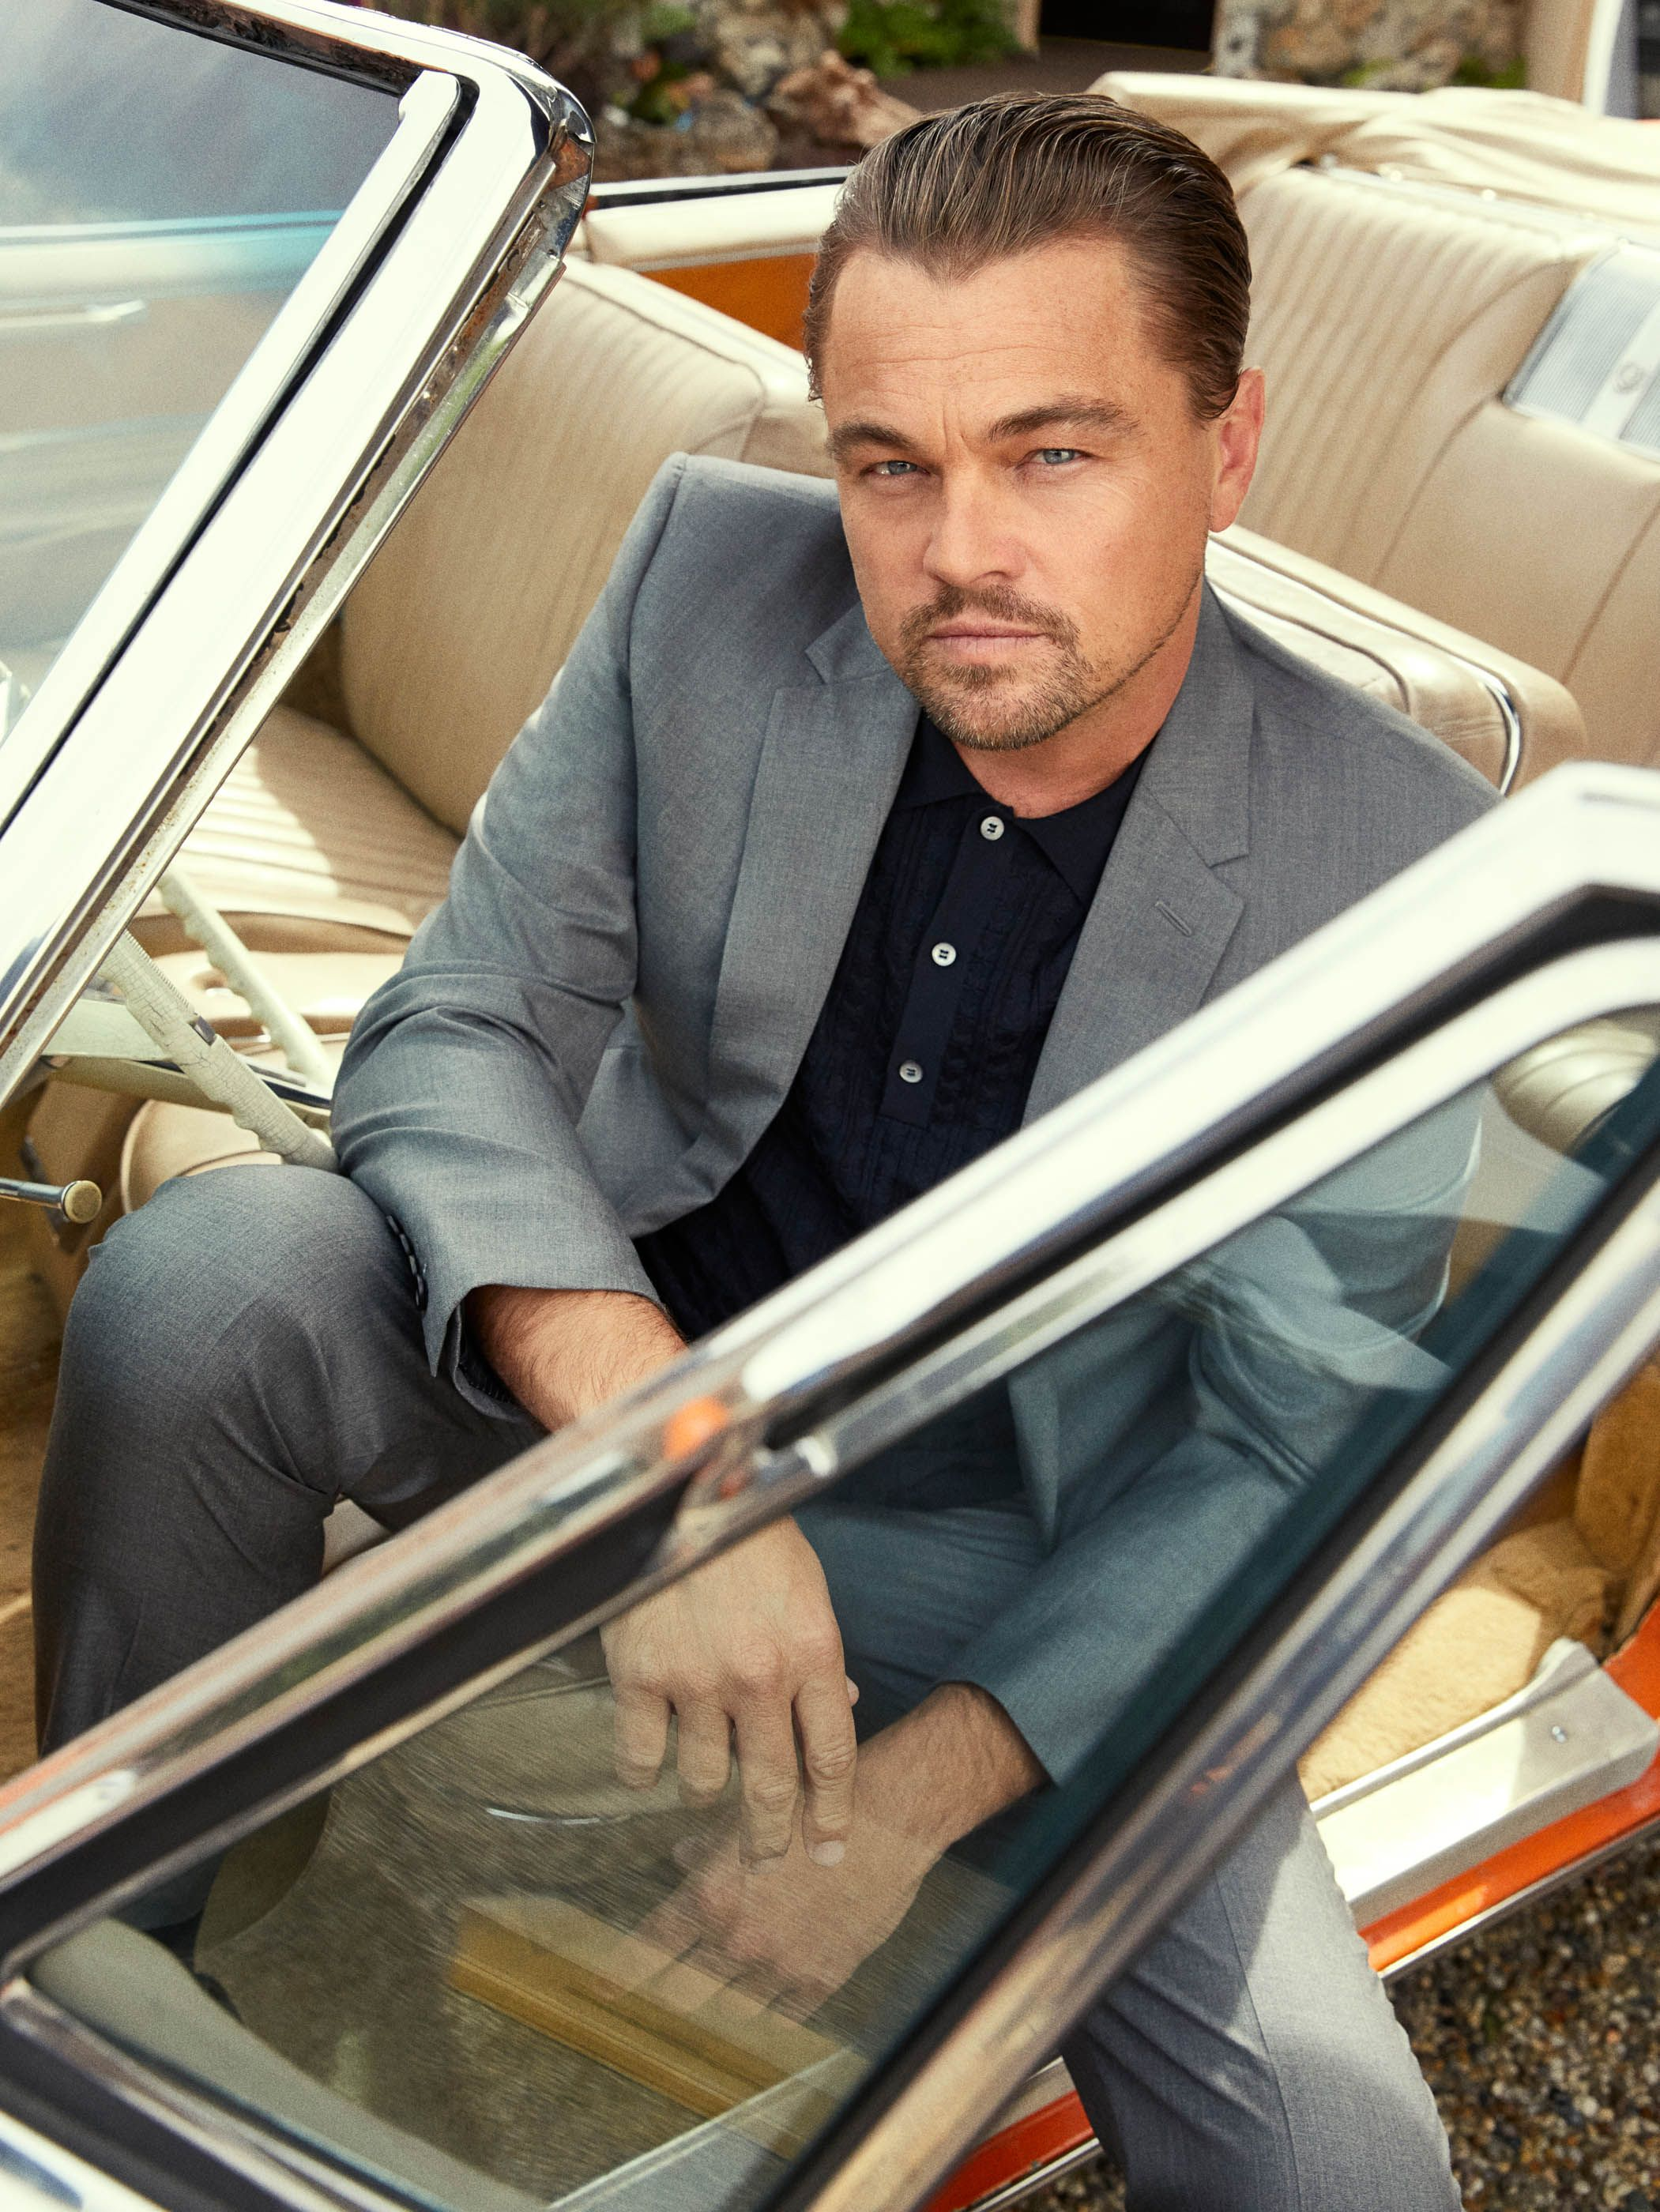 Leonardo DiCaprio, from Esquire's Summer cover shoot. His performance as an actor whose star is falling serves as the film's emotional centerpiece.